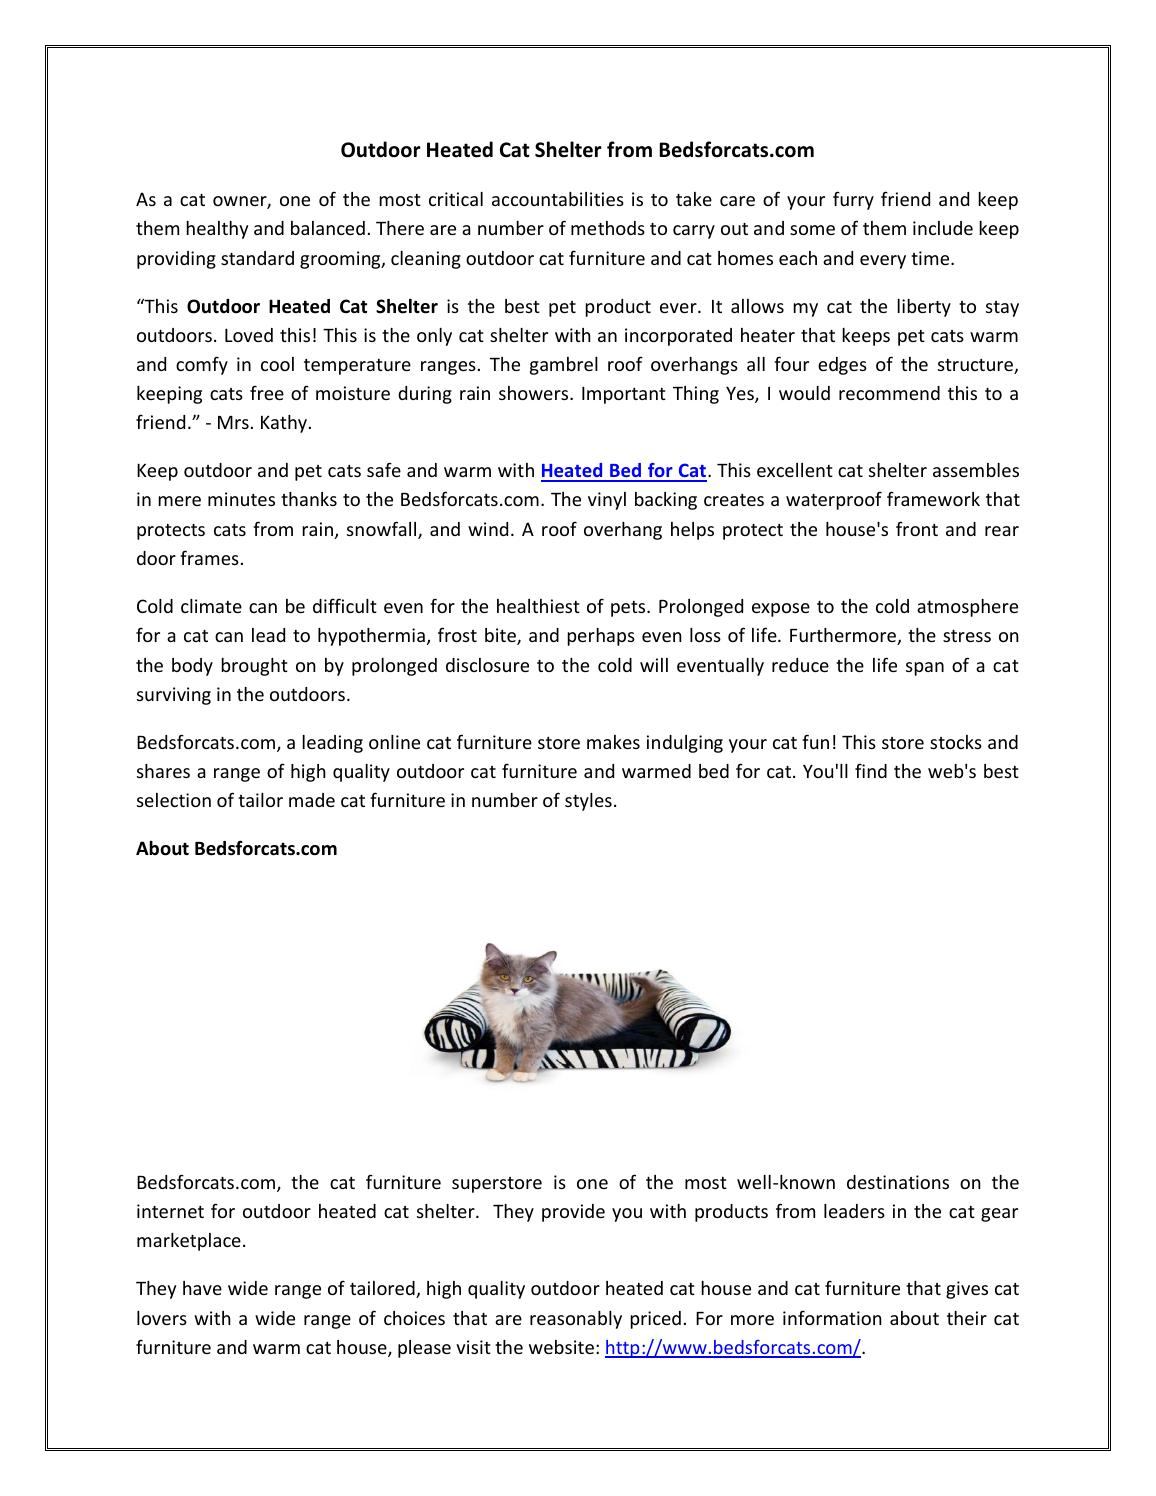 Outdoor Cat Bed by bedsforcats - issuu